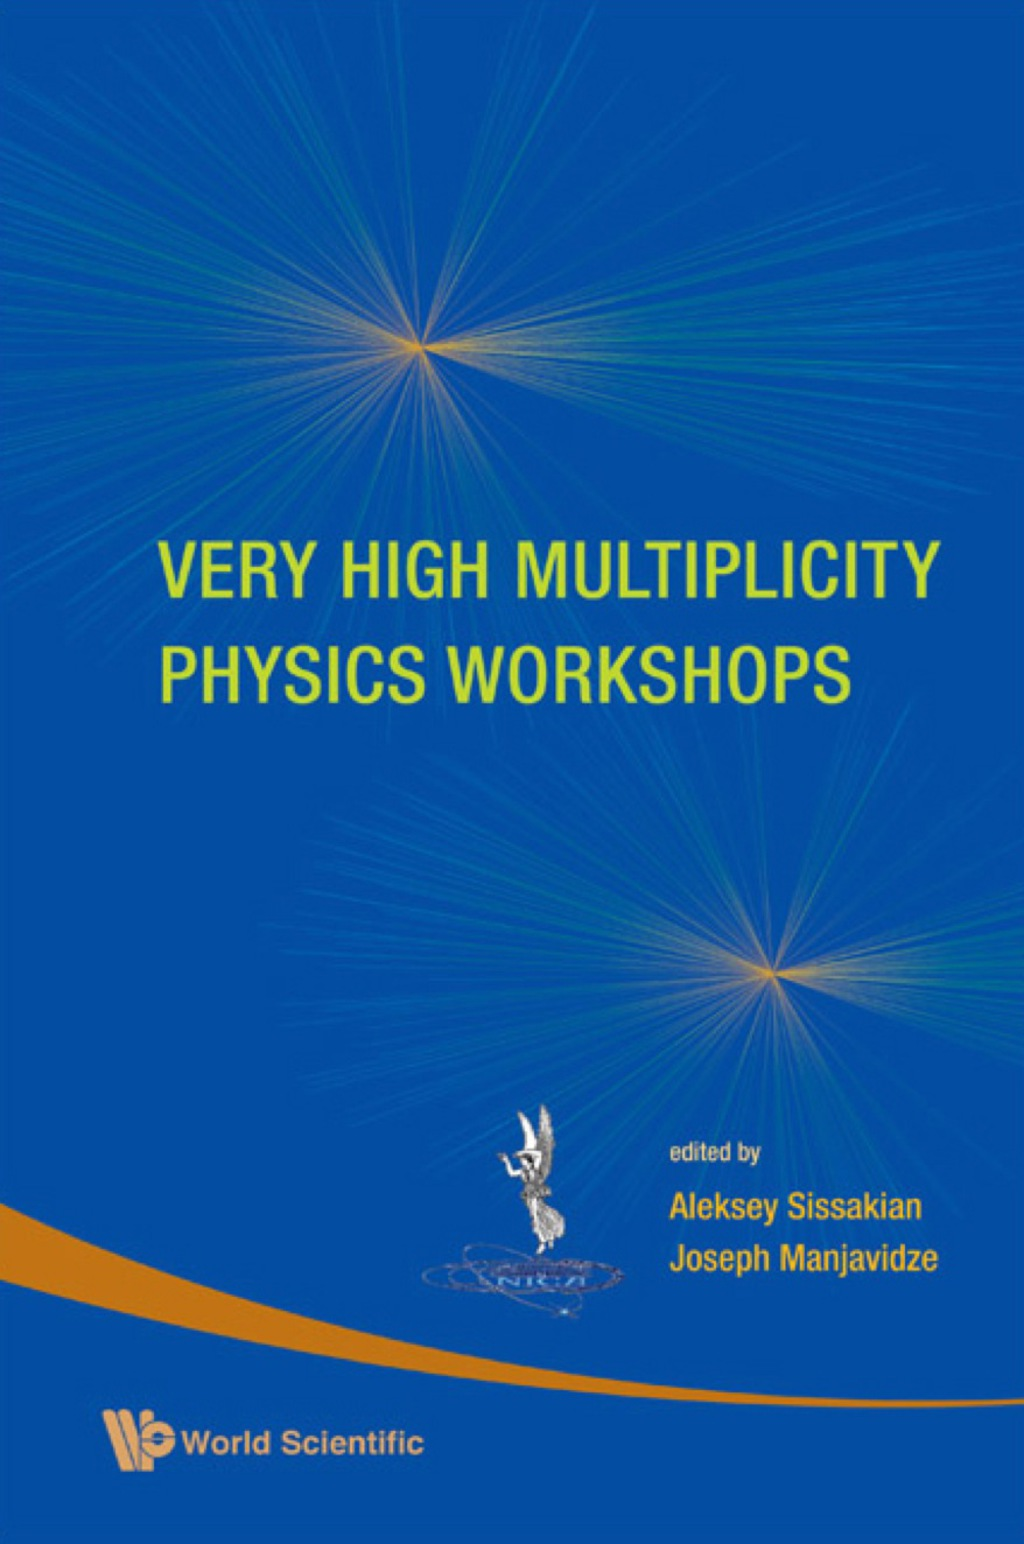 Very High Multiplicity Physics Workshops - Proceedings Of The Vhm Physics Workshops (ebook) eBooks